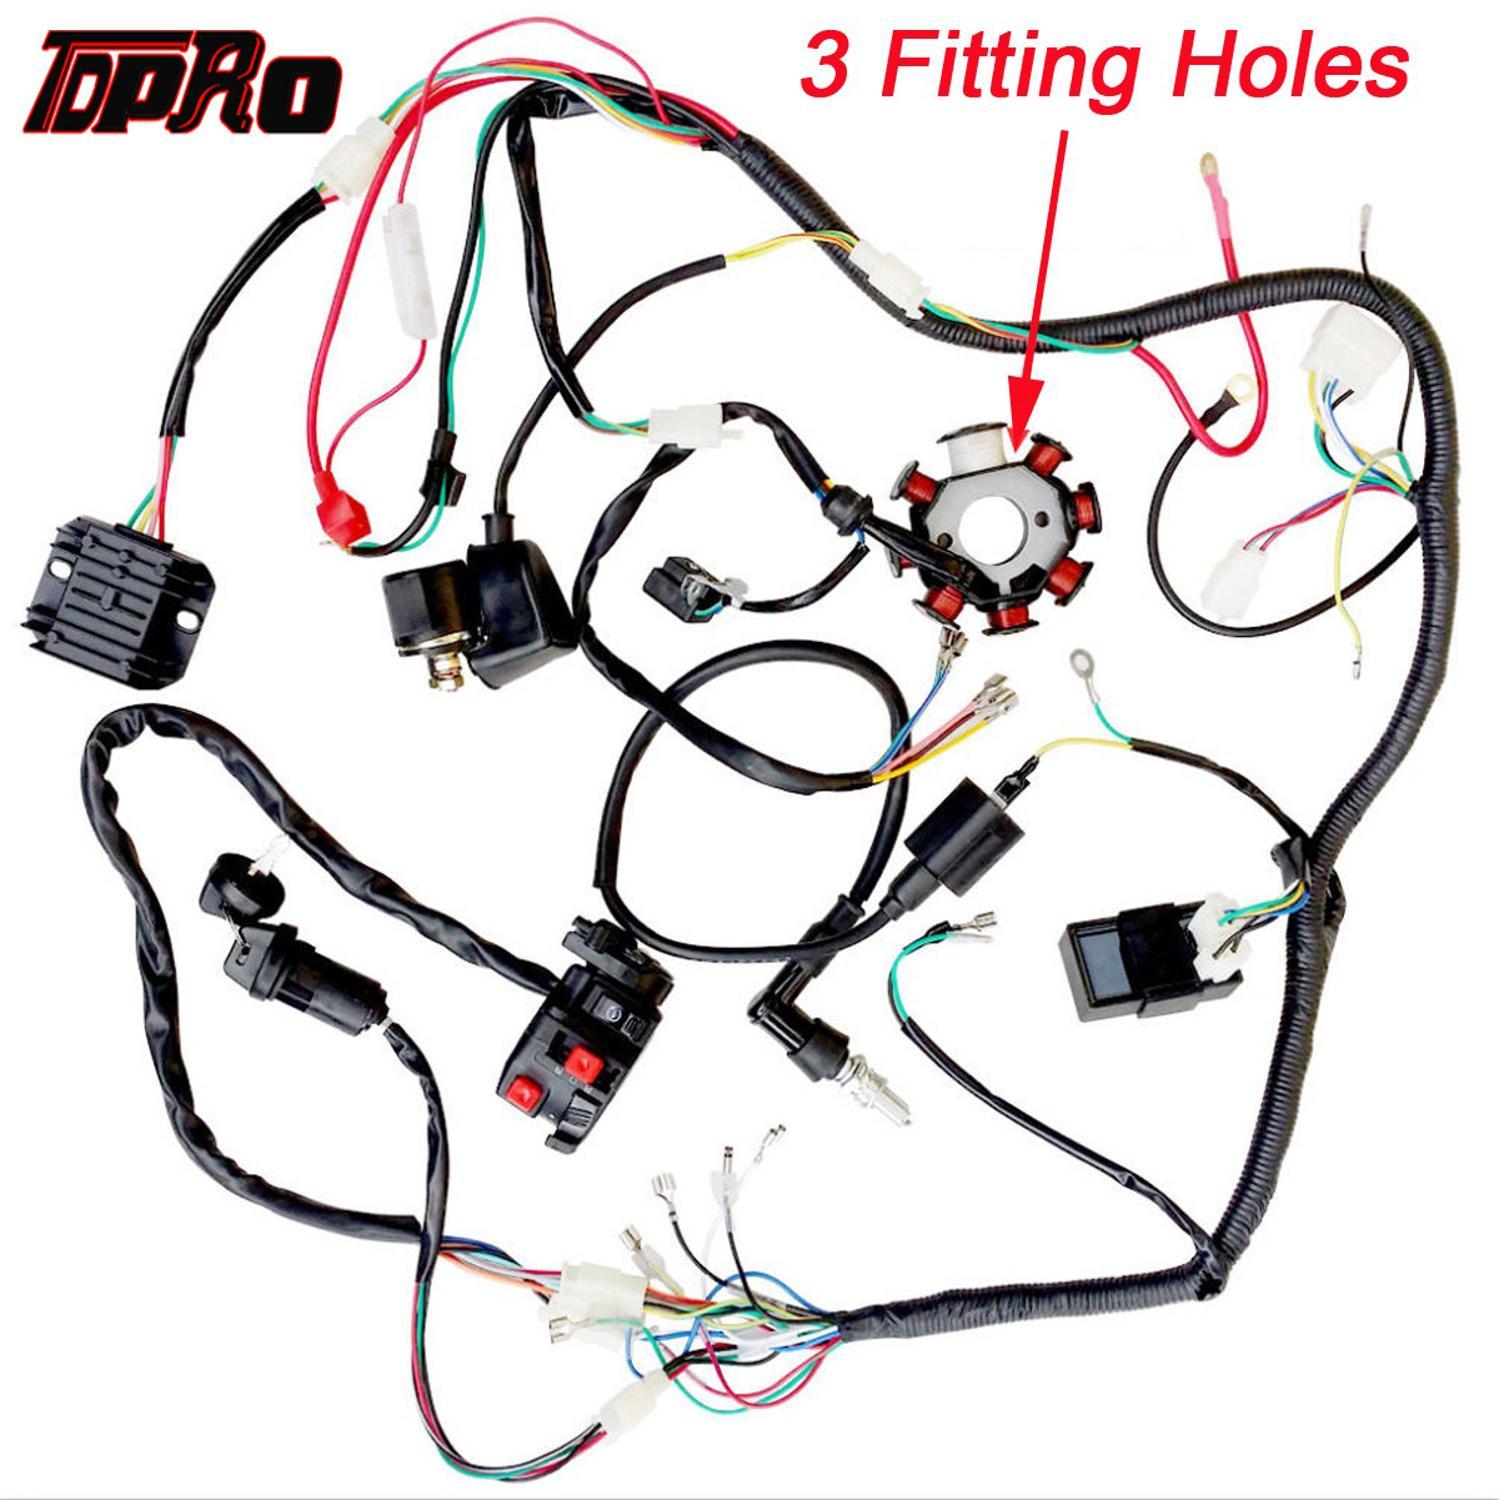 TDPRO Motorcycle Full Complete Electrics Wiring Harness Loom Ignition Coil CDI Switch For Scooter Moped 125cc~250cc Pitbike Go Kart image